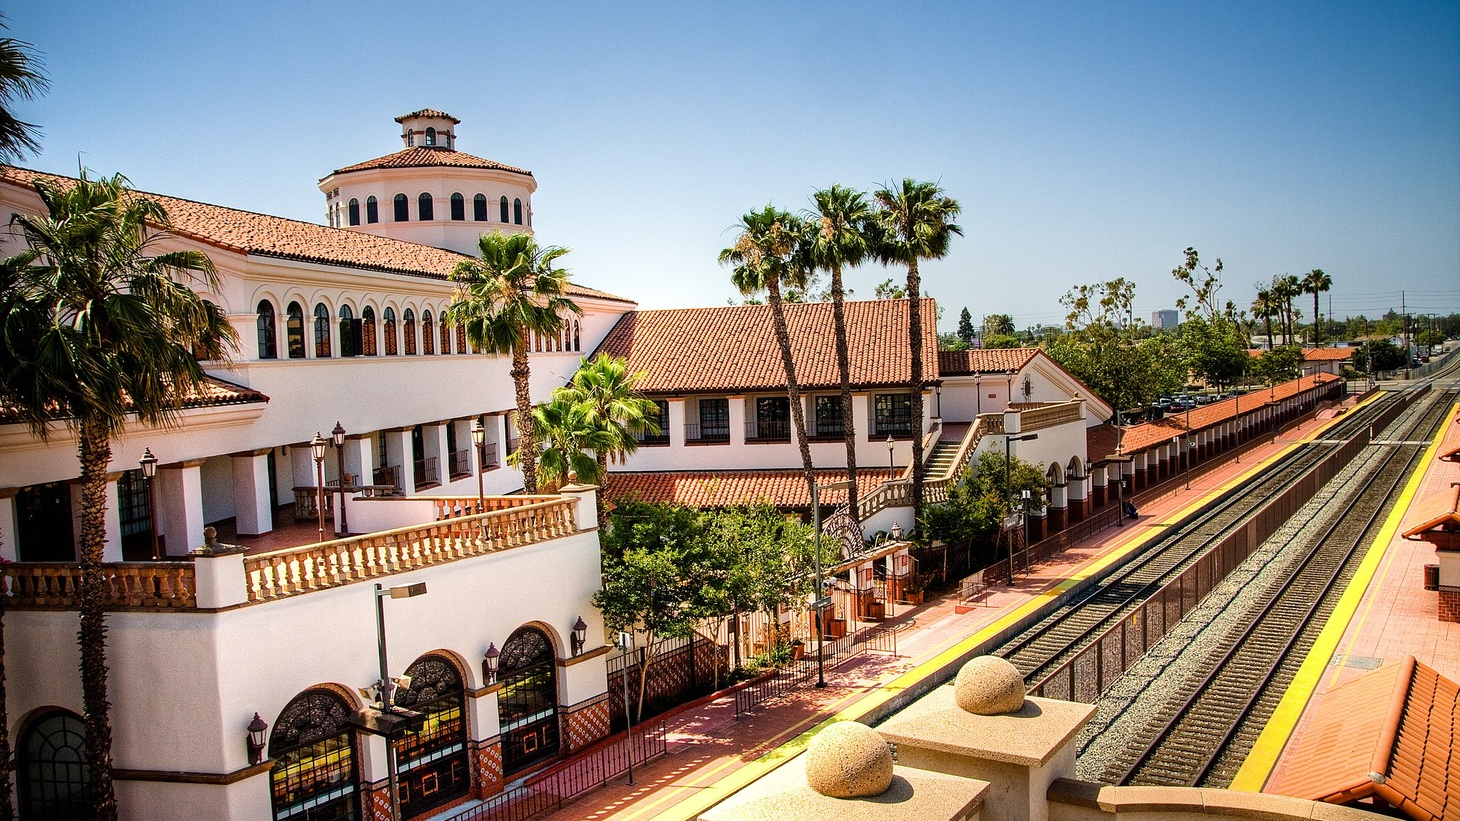 The Amtrak station in Santa Ana, California. Santa Ana has one of the highest concentrations of coronavirus cases in Orange County.